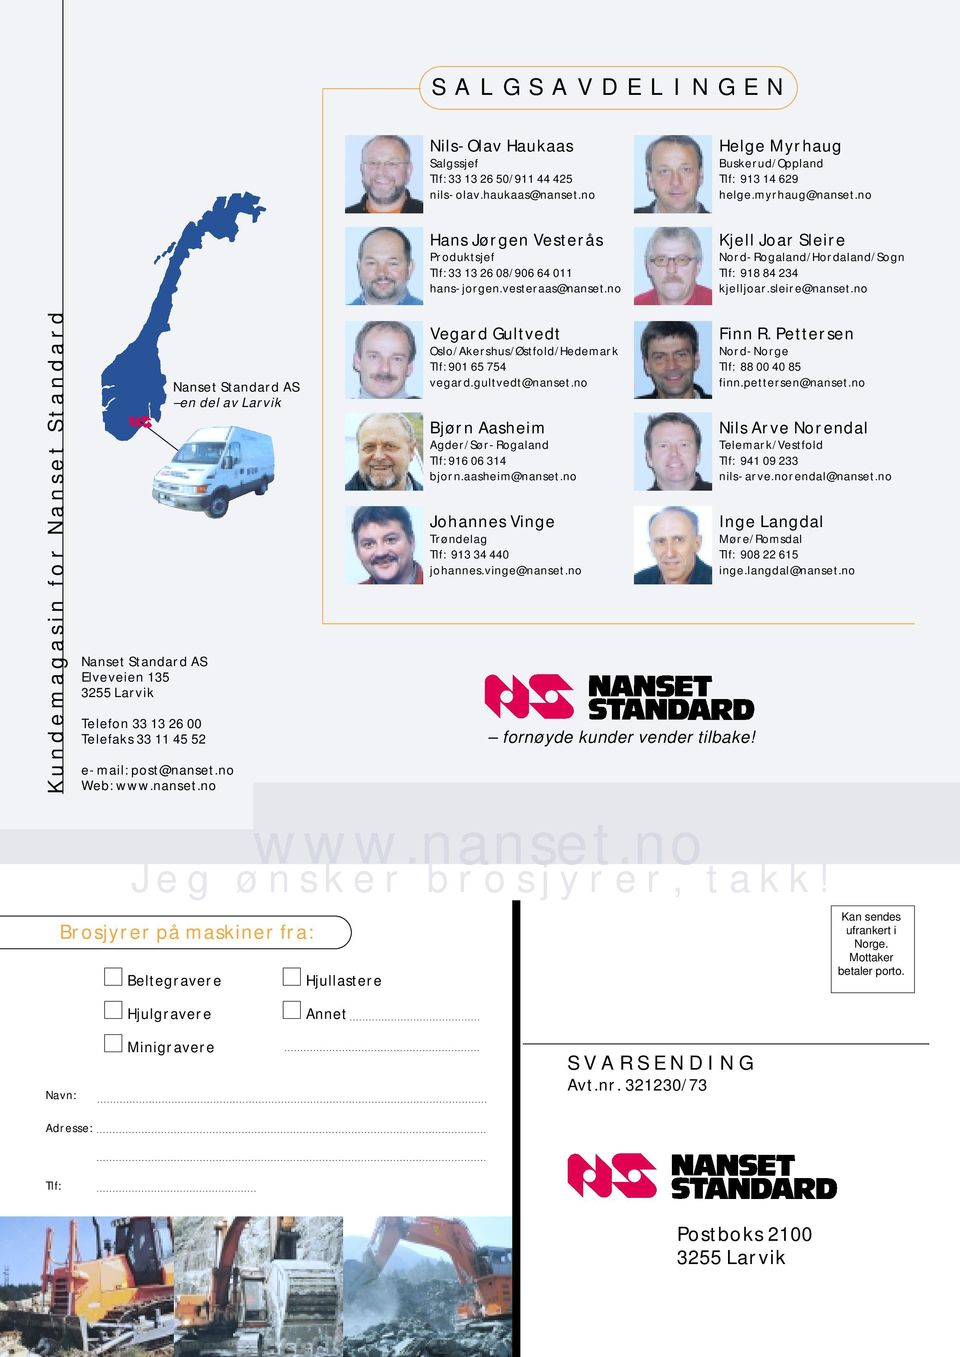 no Kundemagasin for Nanset Standard Nanset Standard AS Elveveien 135 3255 Larvik Telefon 33 13 26 00 Telefaks 33 11 45 52 Nanset Standard AS en del av Larvik e-mail: post@nanset.